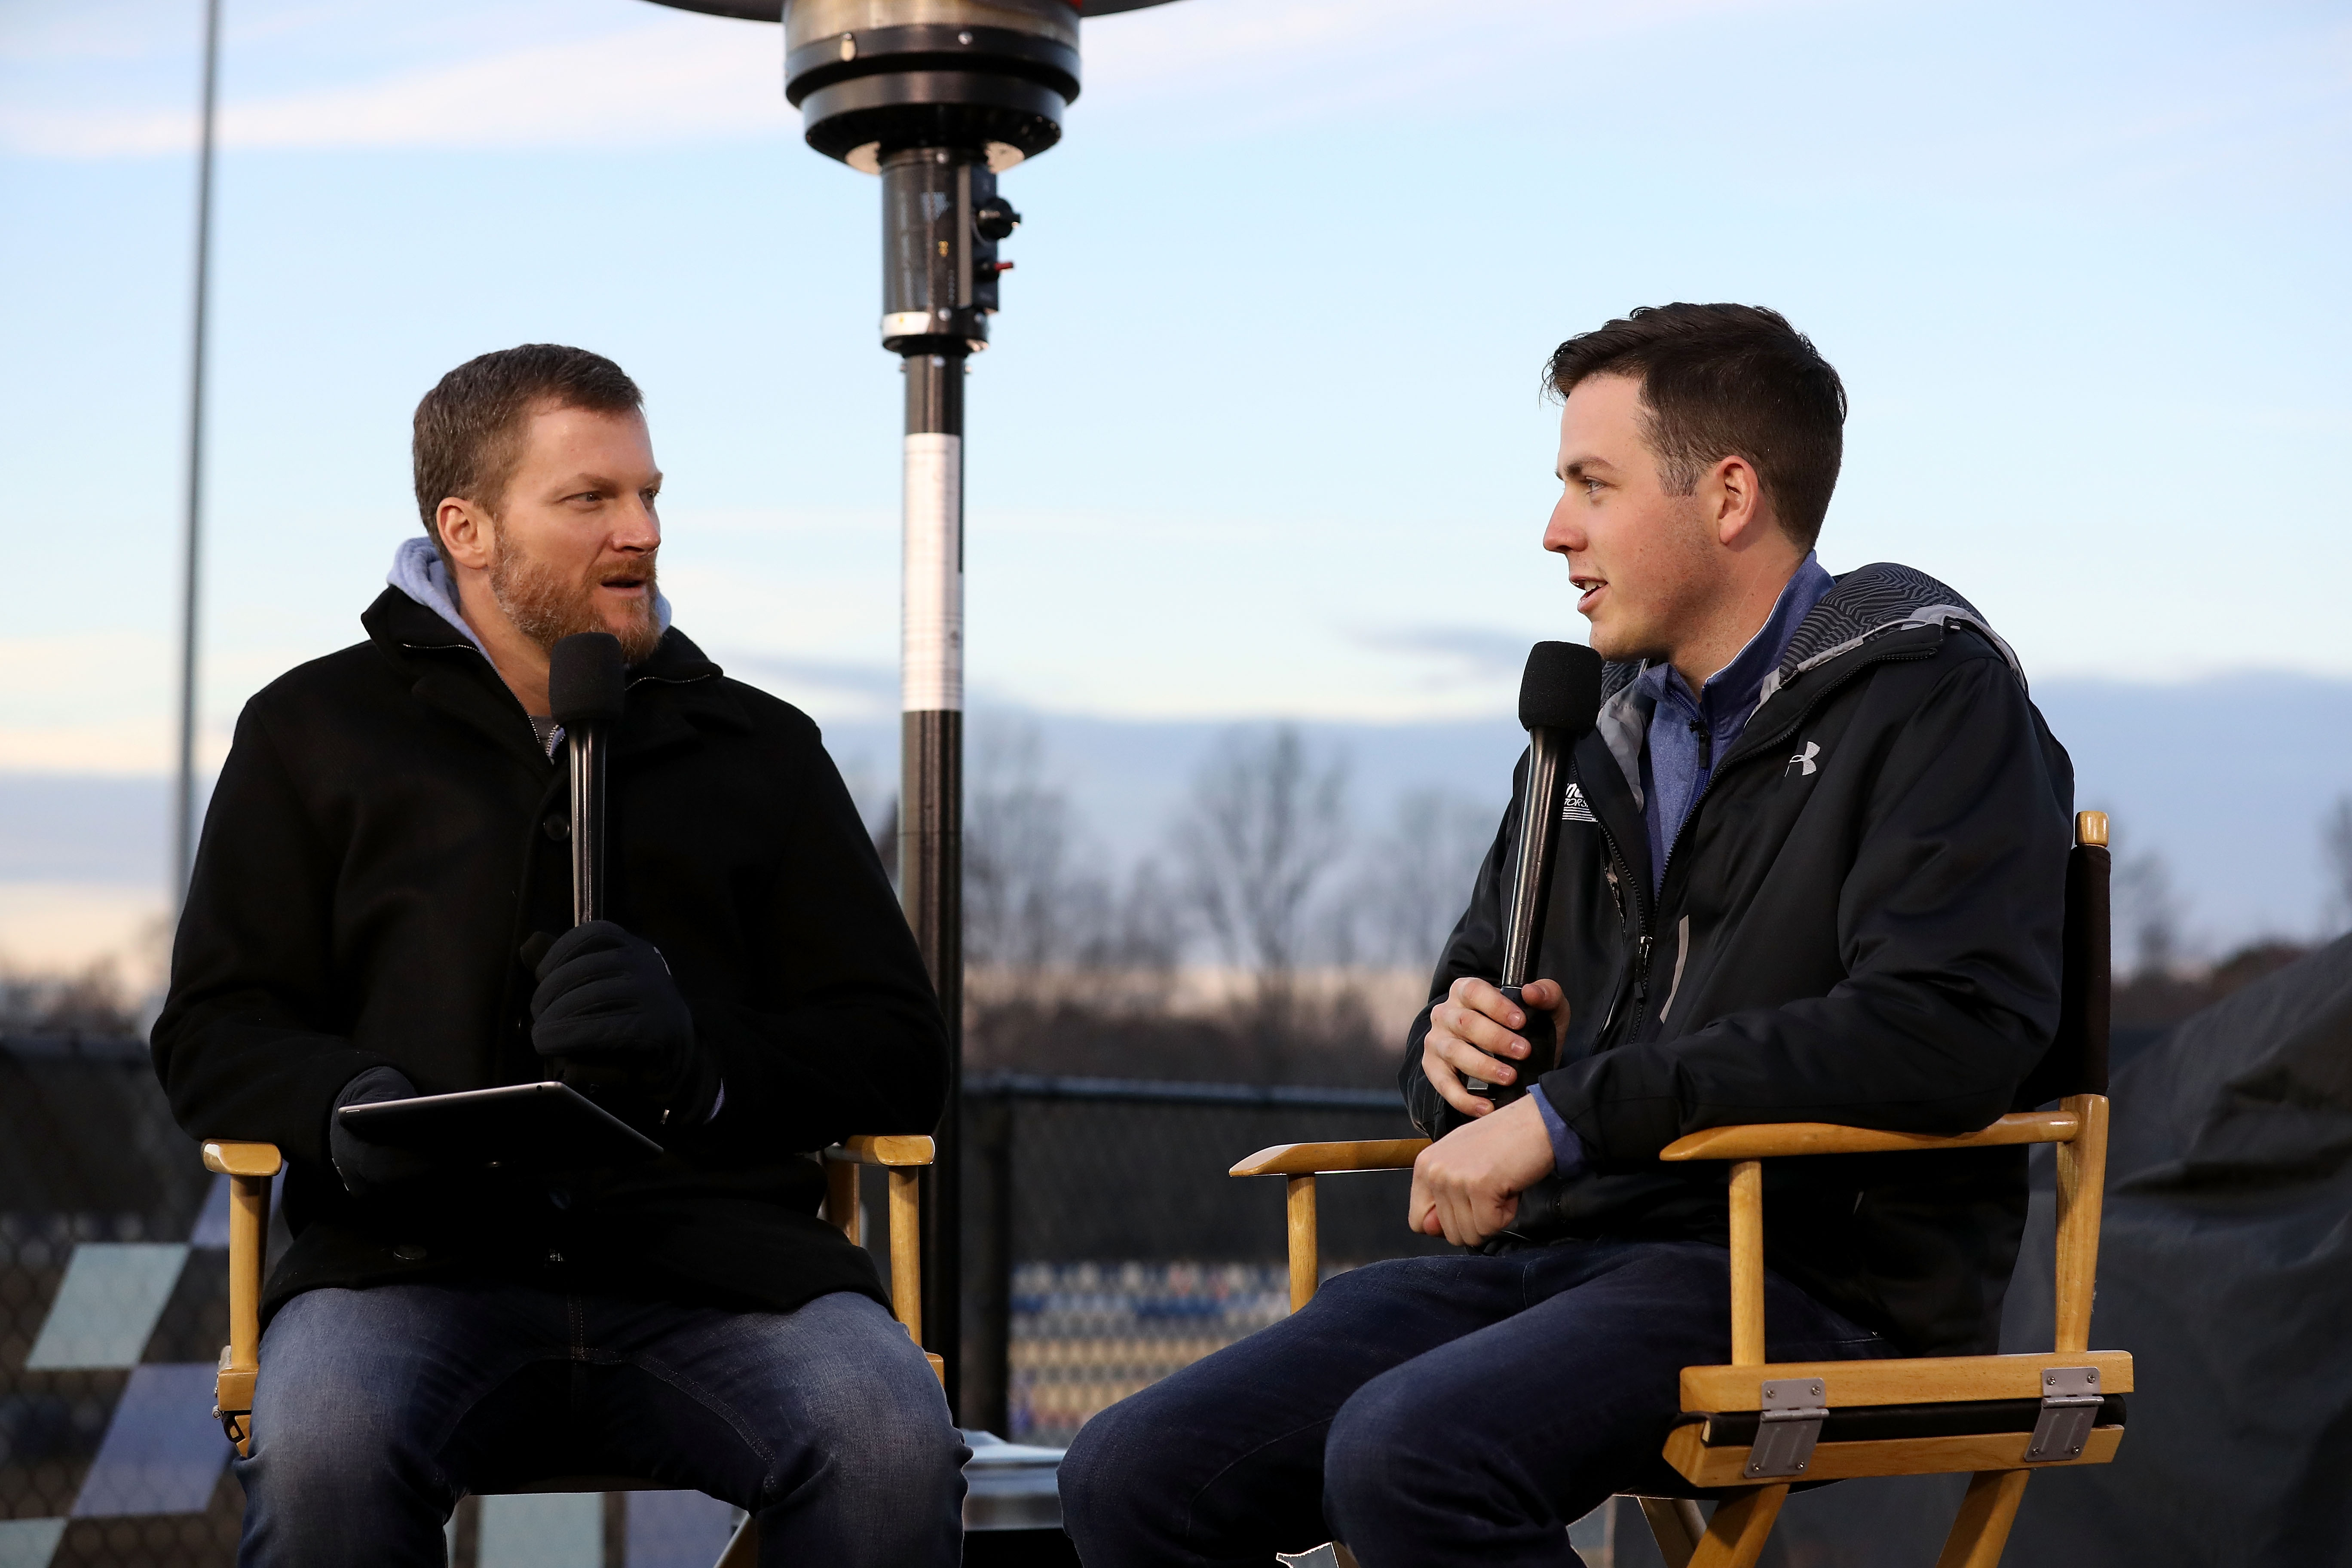 MOORESVILLE, NC - DECEMBER 06: (L-R) Dale Earnhardt Jr. and Alex Bowman interact with fans and media during the Nationwide 2019 Paint Scheme Reveal at GoPro Motorplex on December 6, 2018 in Mooresville, North Carolina. (Photo by Streeter Lecka/Getty Images)   Getty Images